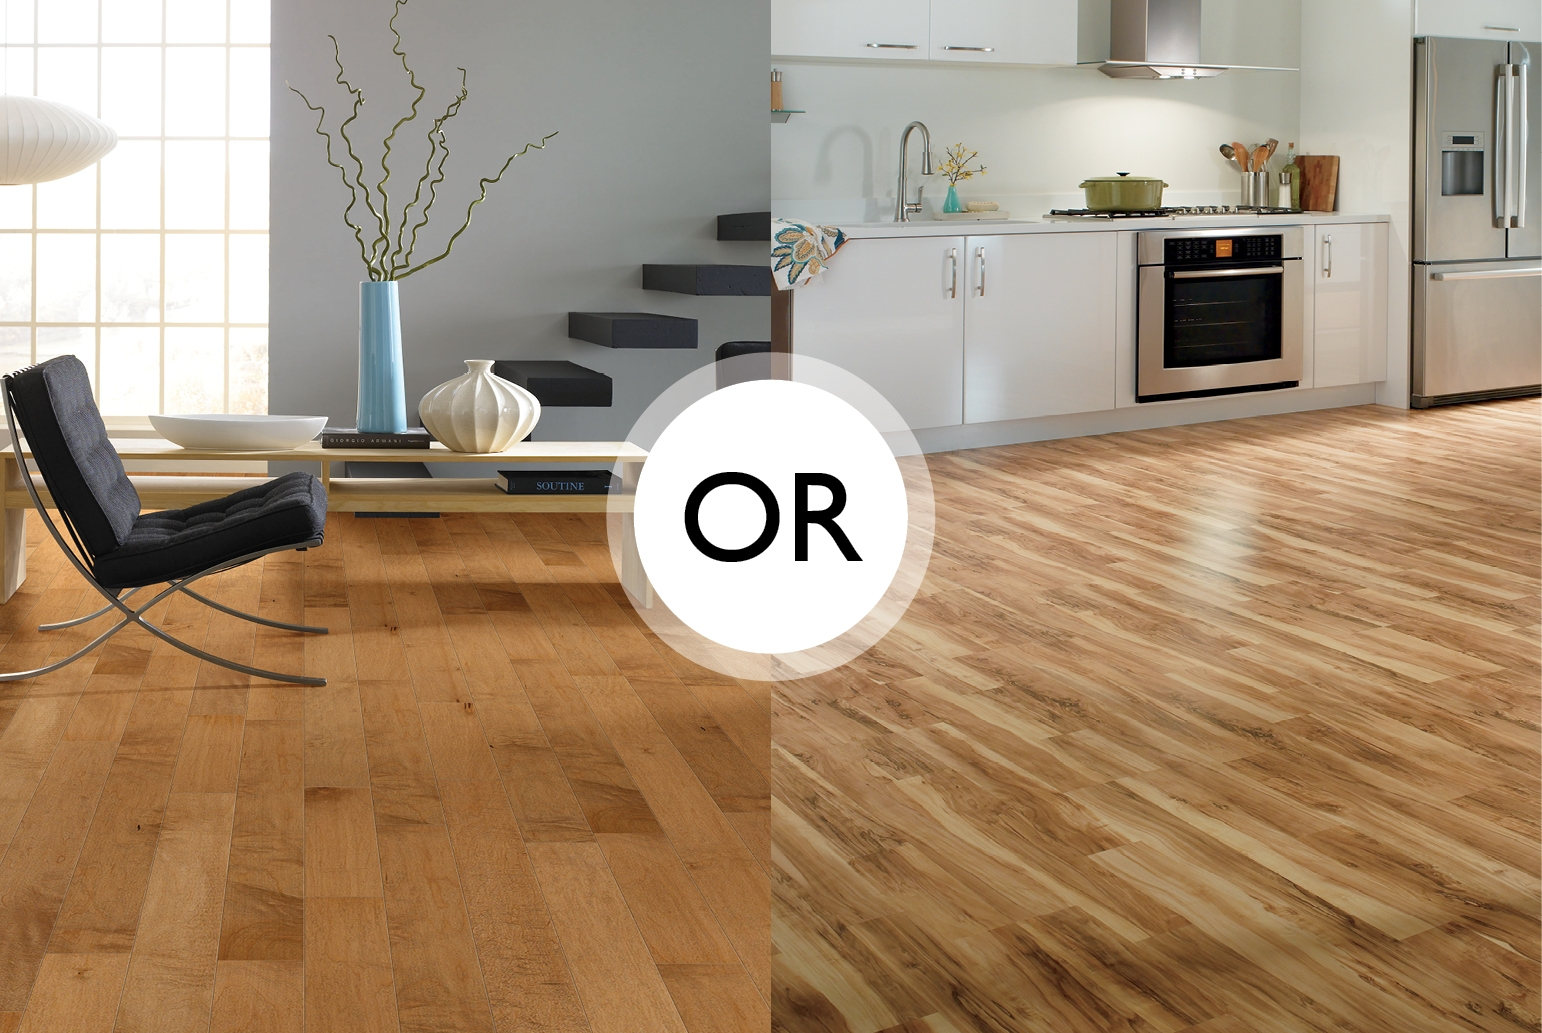 Vinyl Flooring Vs Wooden Flooringhardwood flooring vs laminate flooring smart carpet blogs